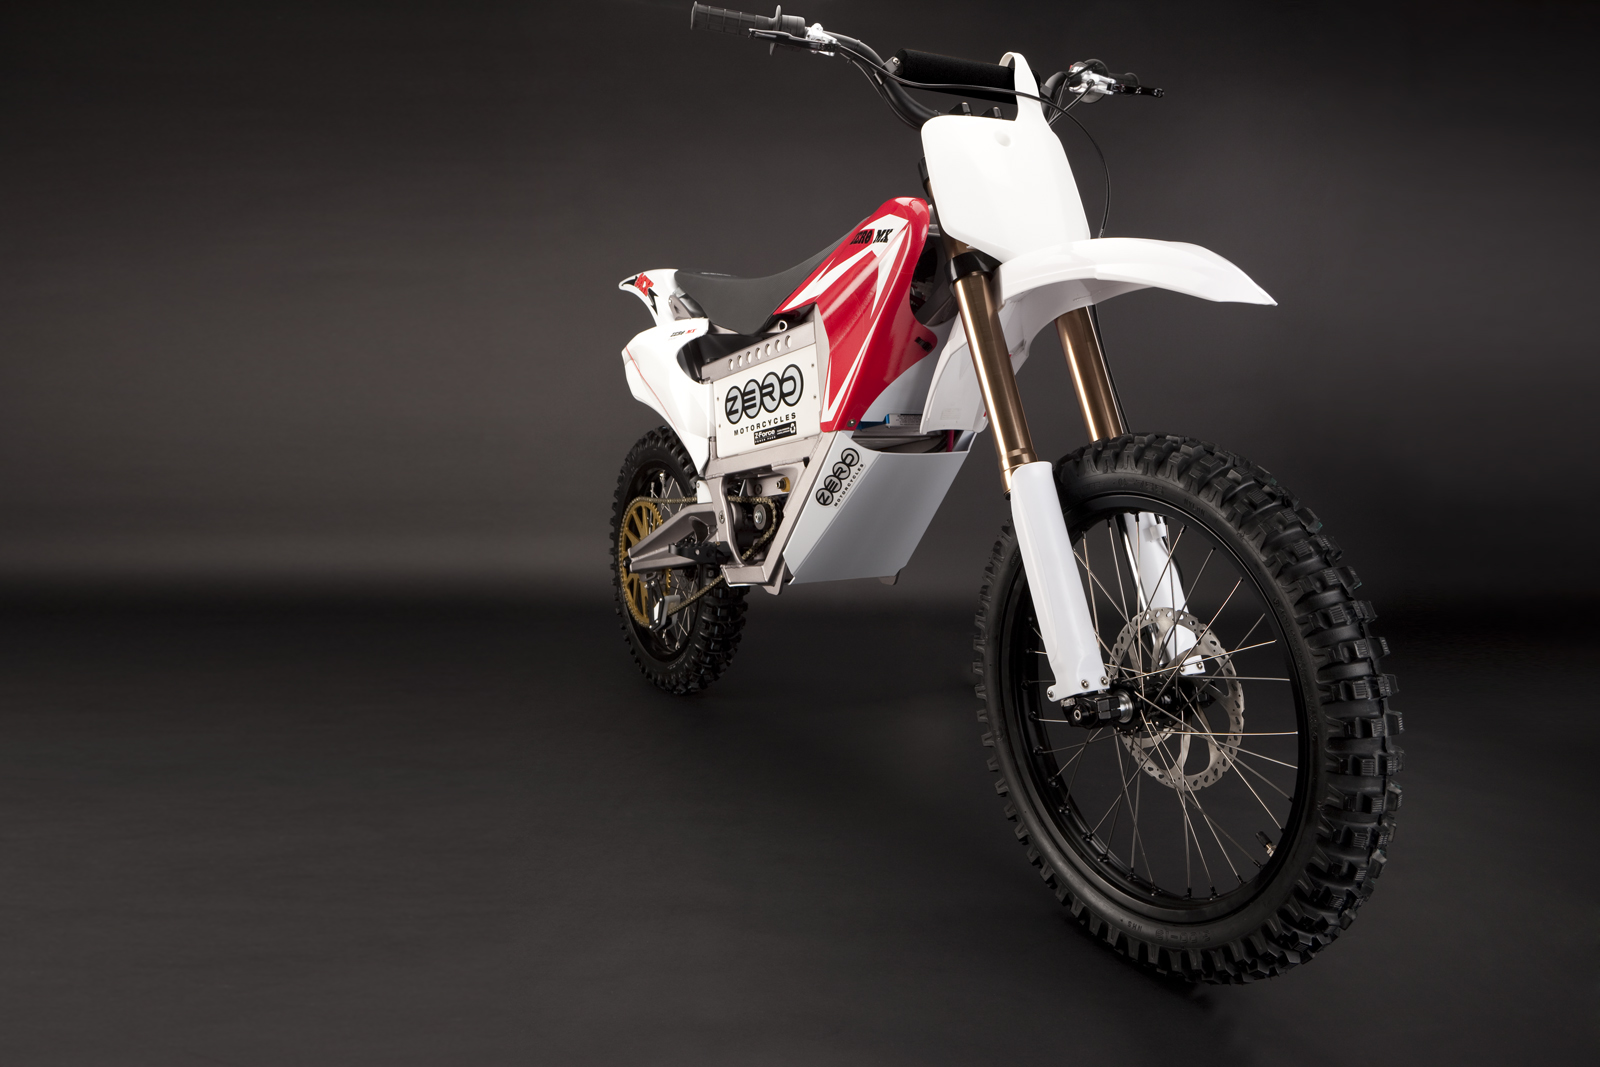 2010 Zero MX Electric Motorcycle: Front Fork